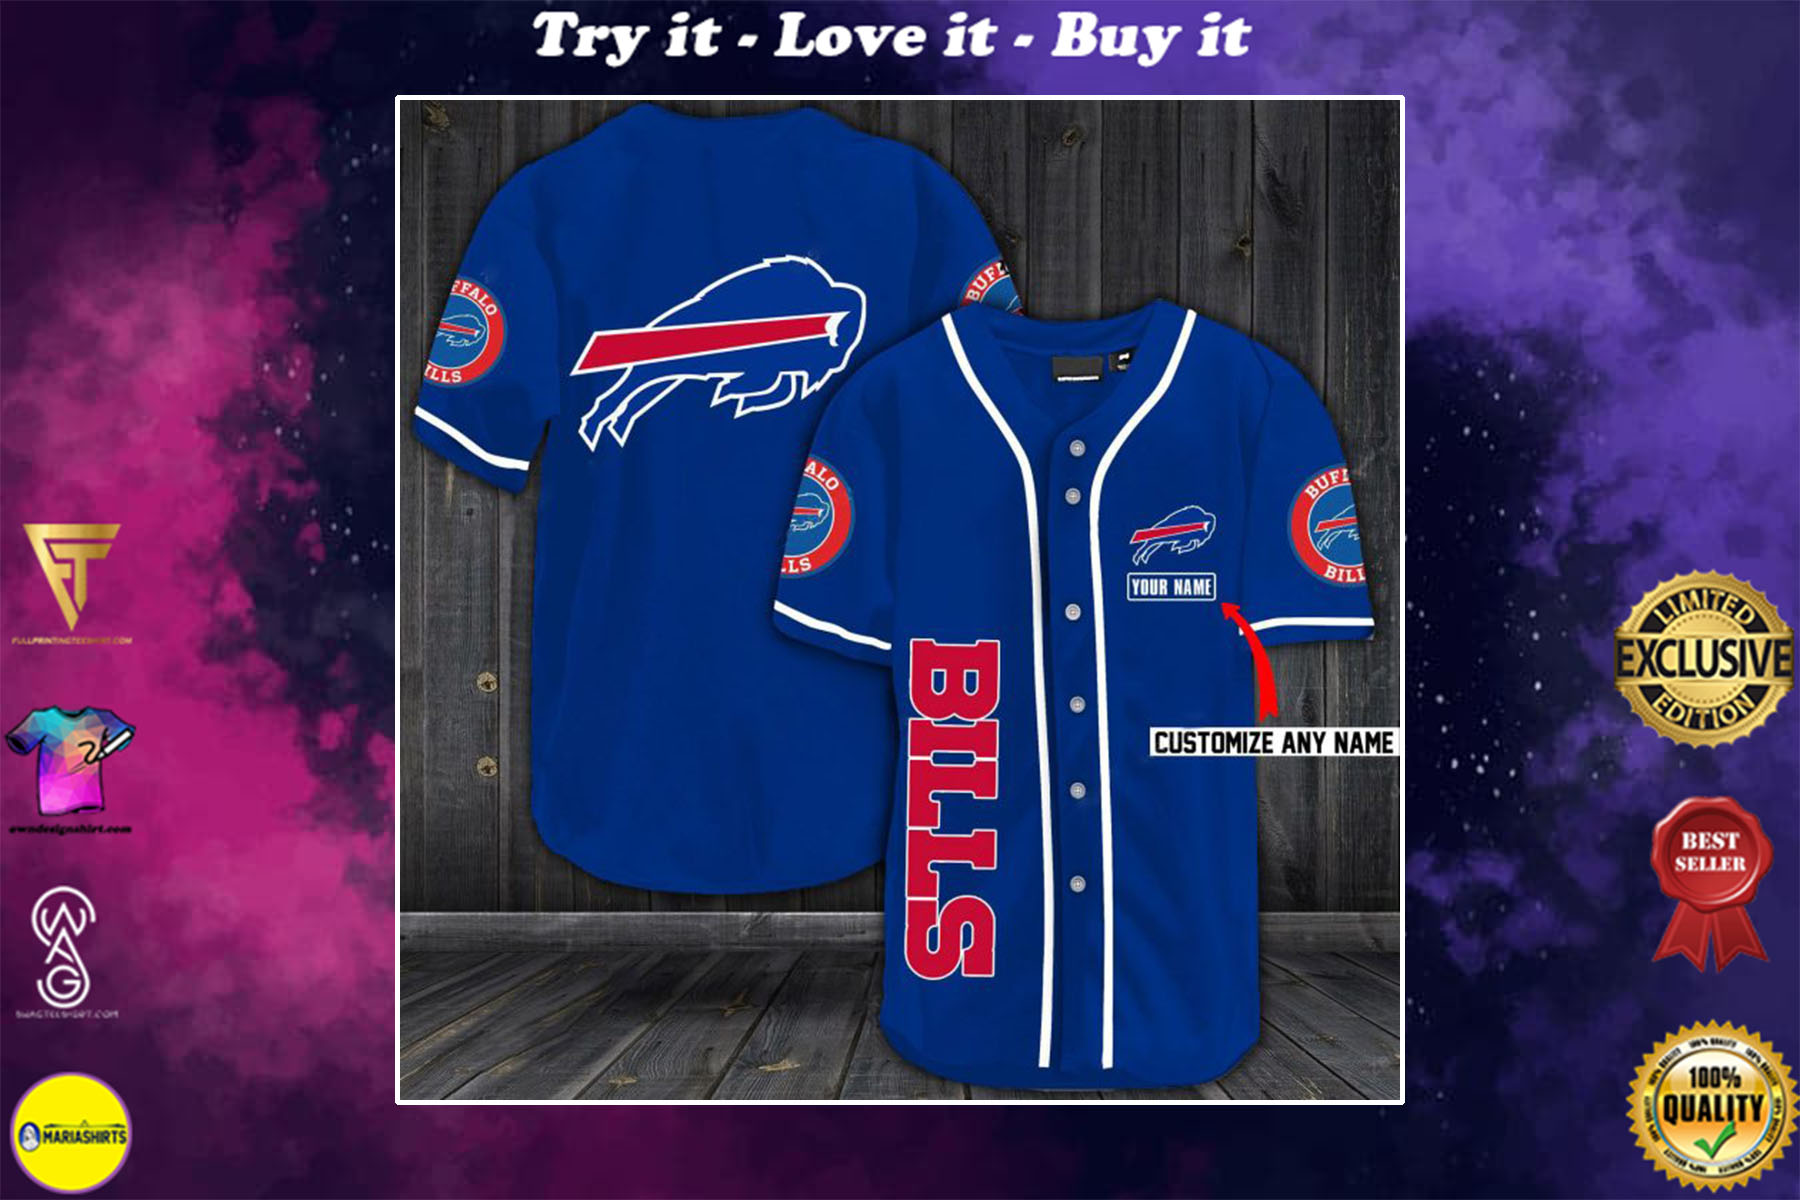 [special edition] personalized name jersey buffalo bills shirt - maria